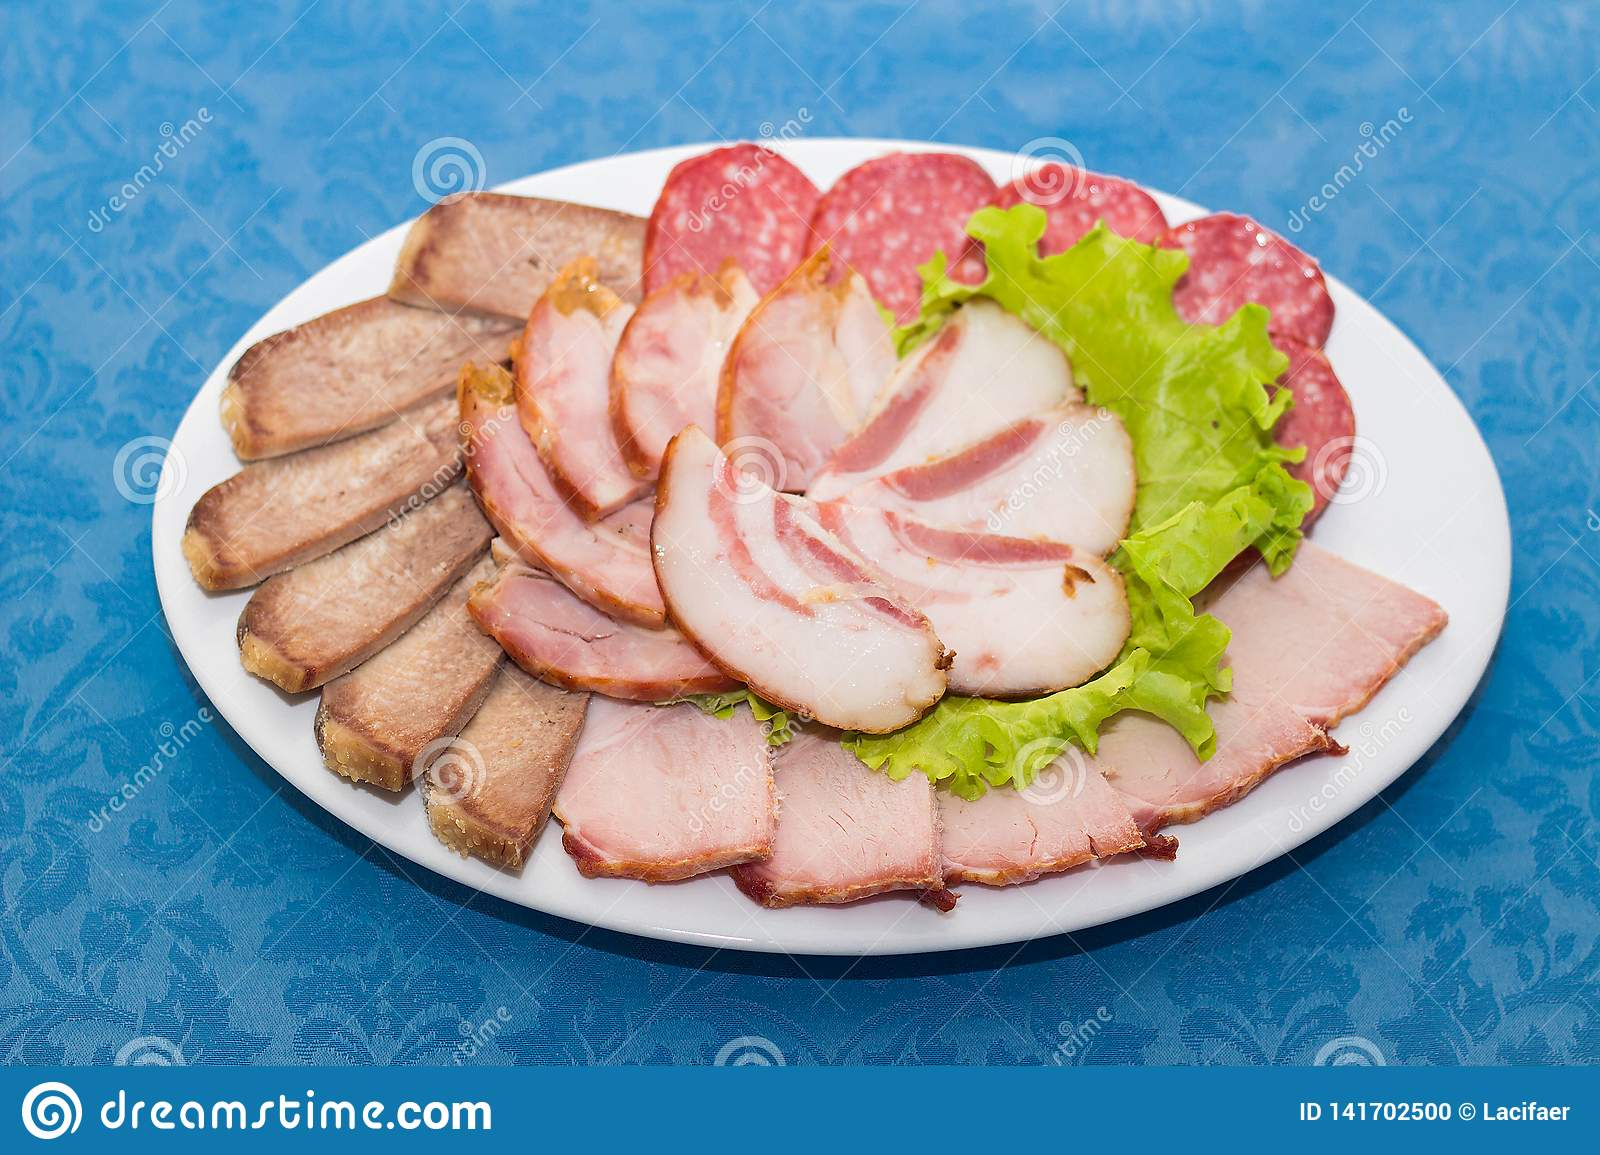 Mixture of sliced meat, sausage and ham